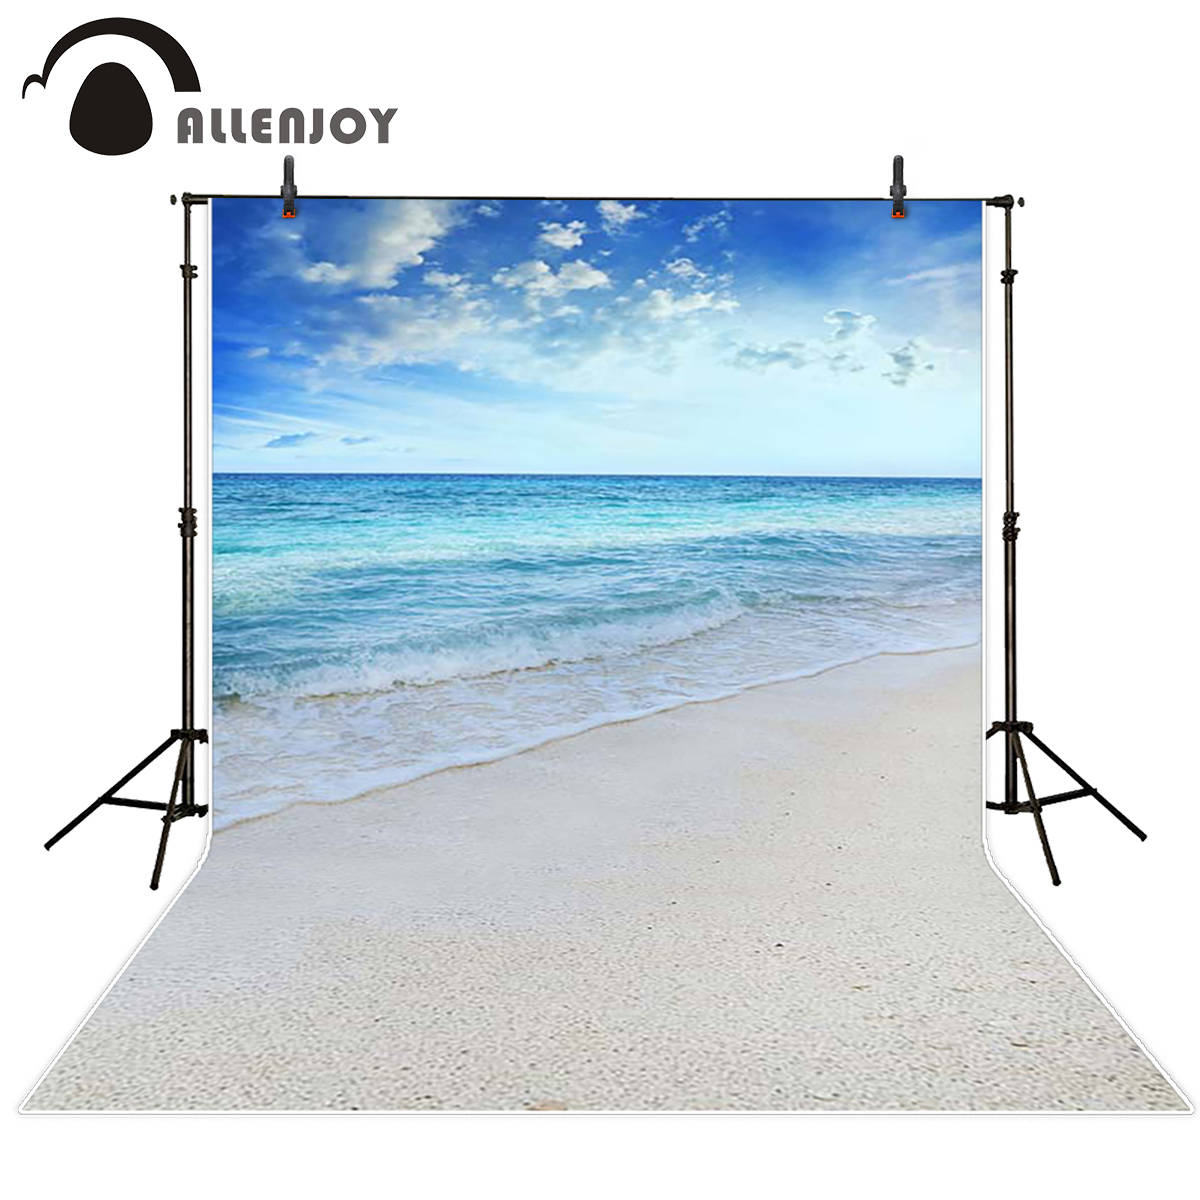 Allenjoy scenic Photo background White Beach spindrift Clouds seaside photography backdrops the cloth photographic camera kate backdrop for photography beach ocean wedding series background photo studio seaside scenic backdrops